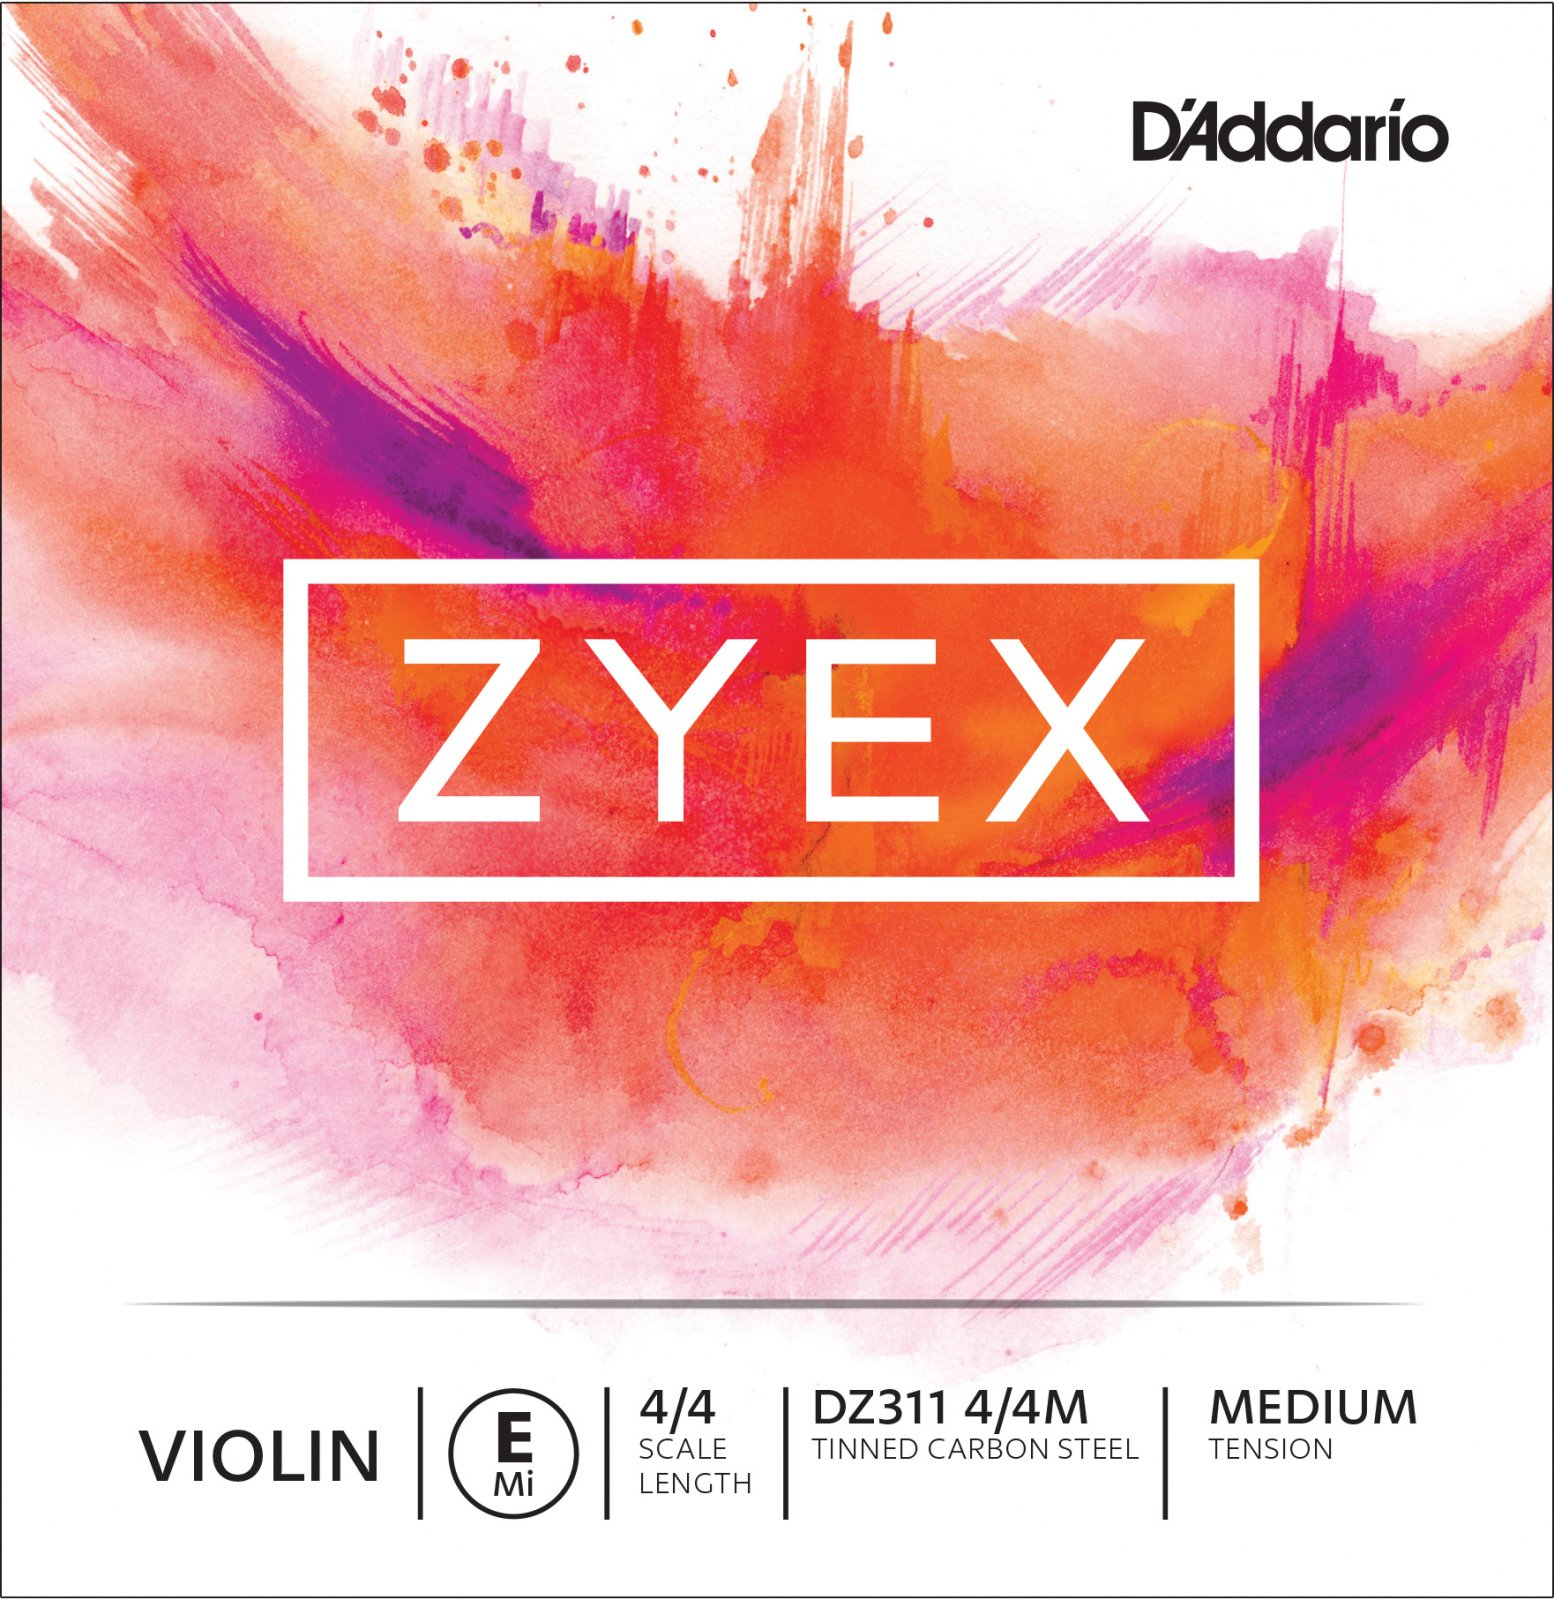 D'Addario DZ311 4/4M Zyex Violin Single E String 4/4 Scale Medium Tension